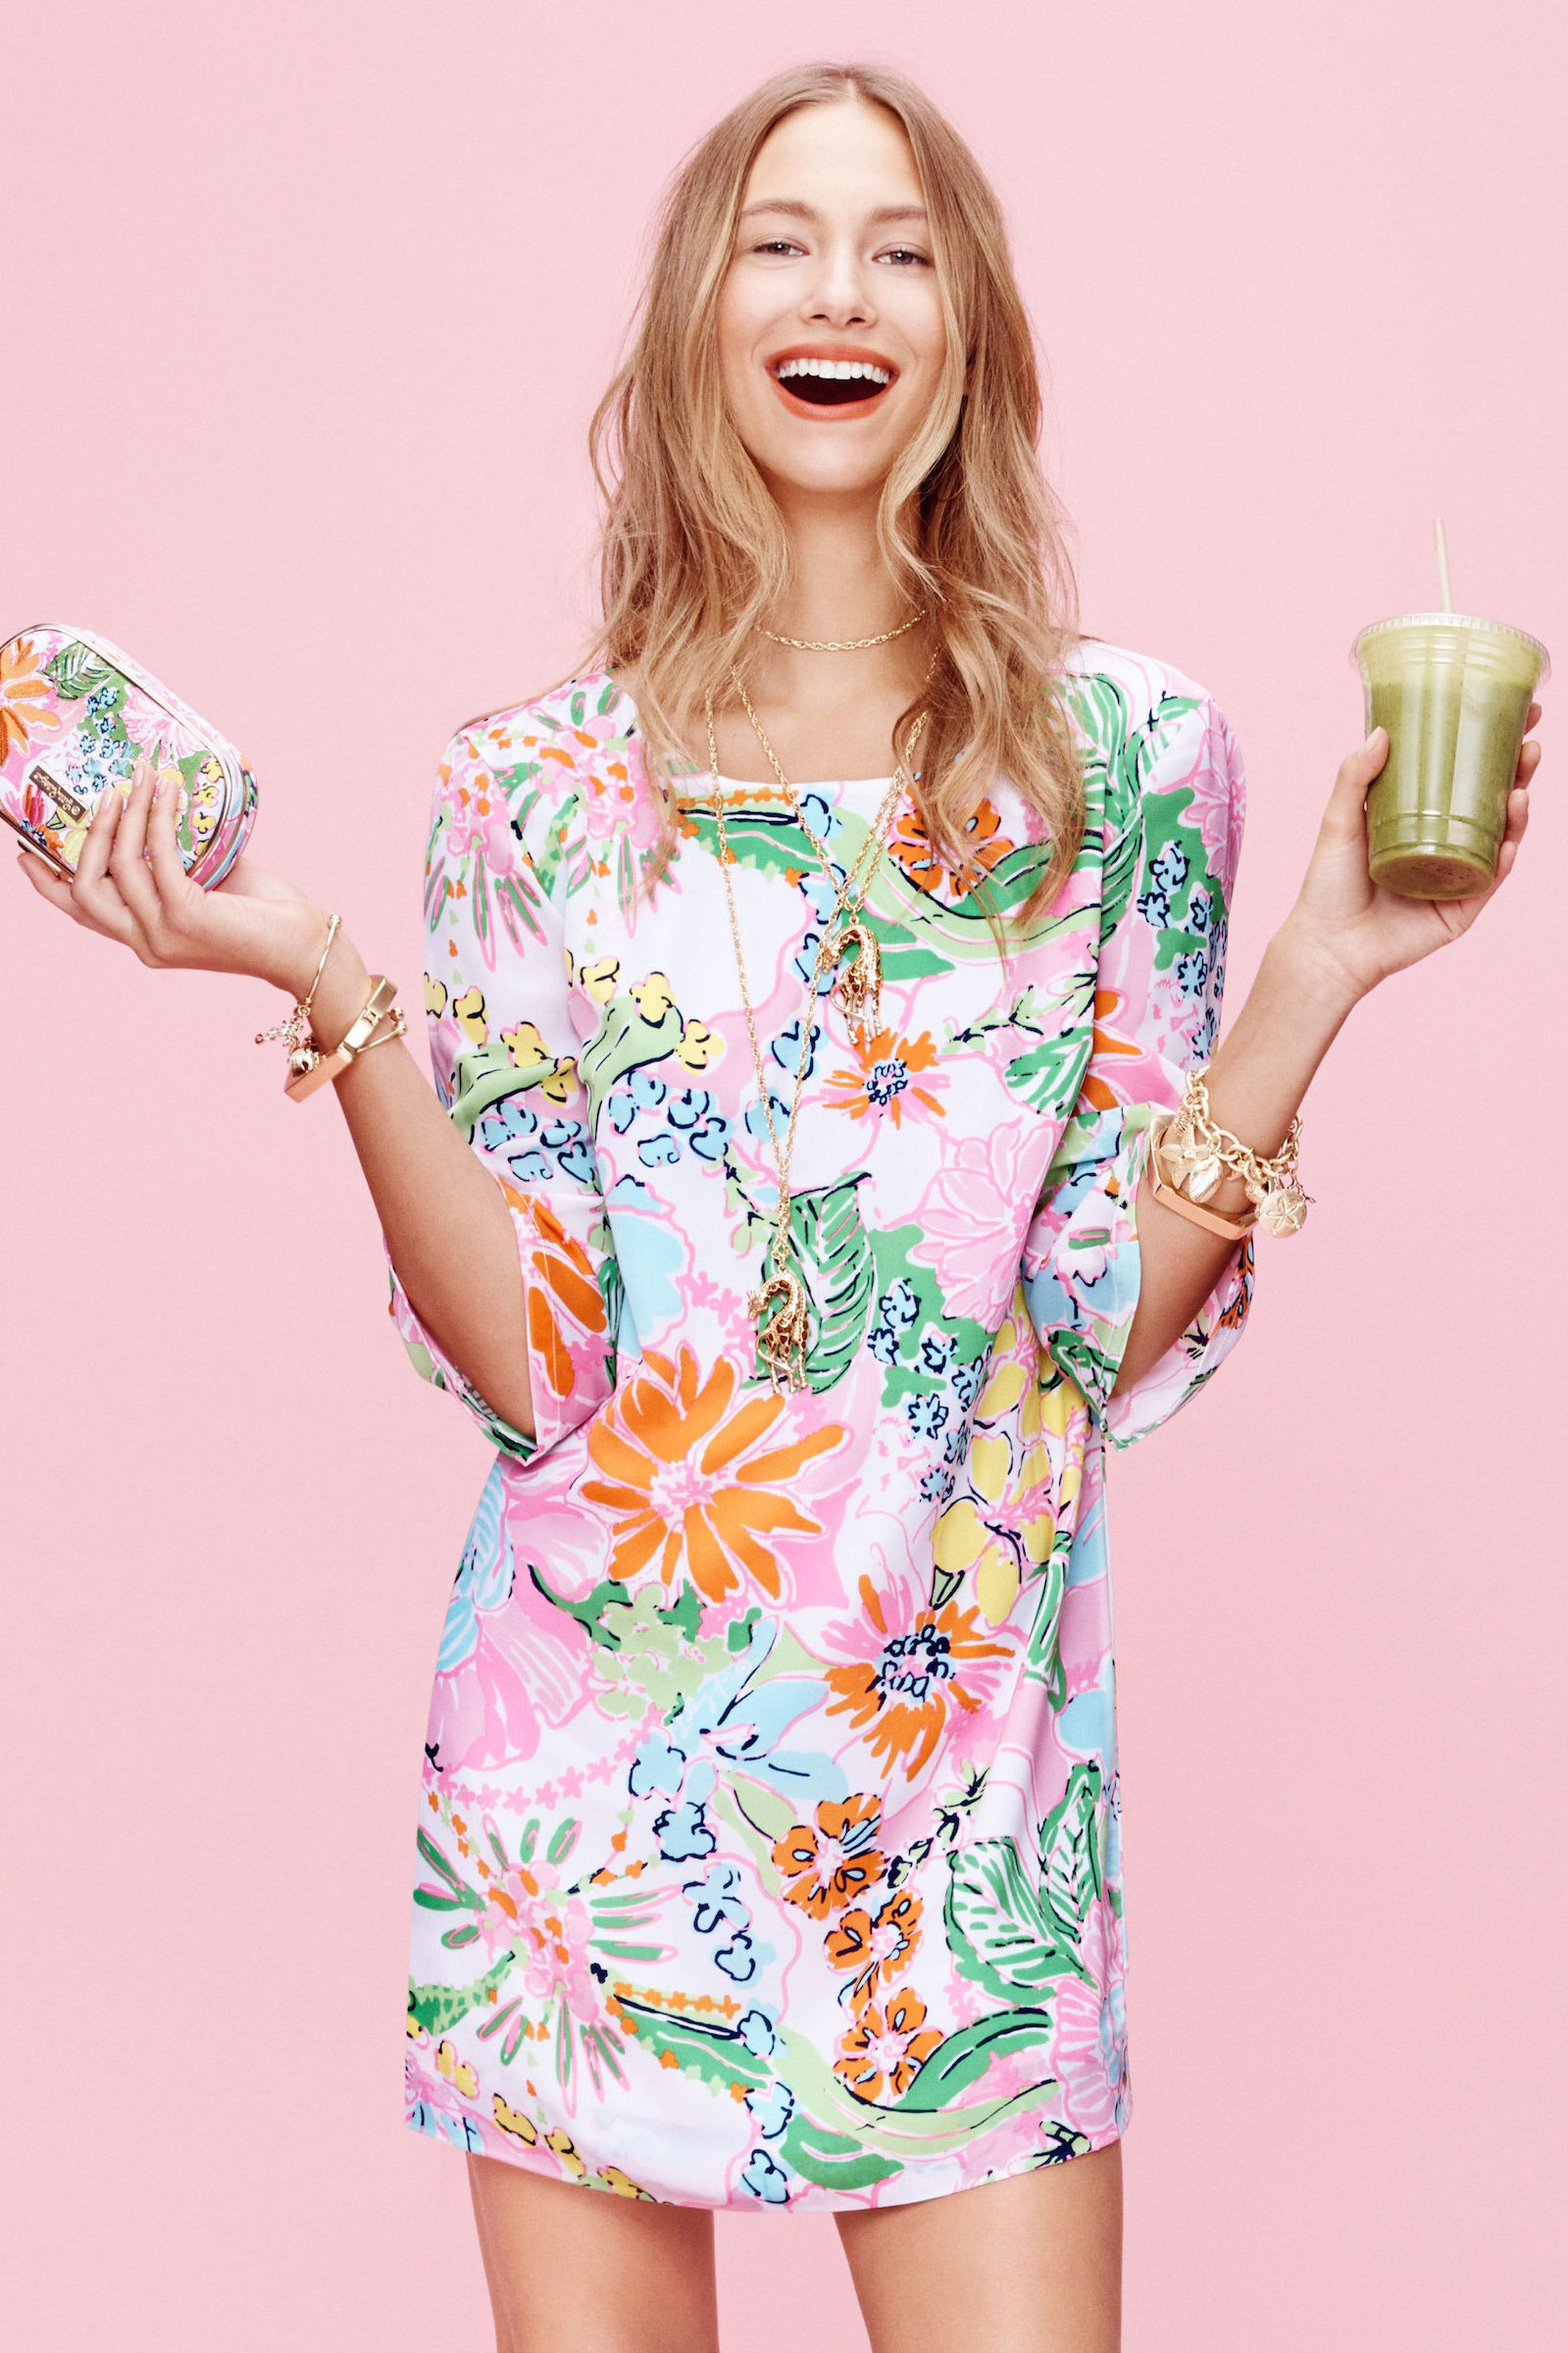 Lilly Pulitzer for Target: The Look Book Released